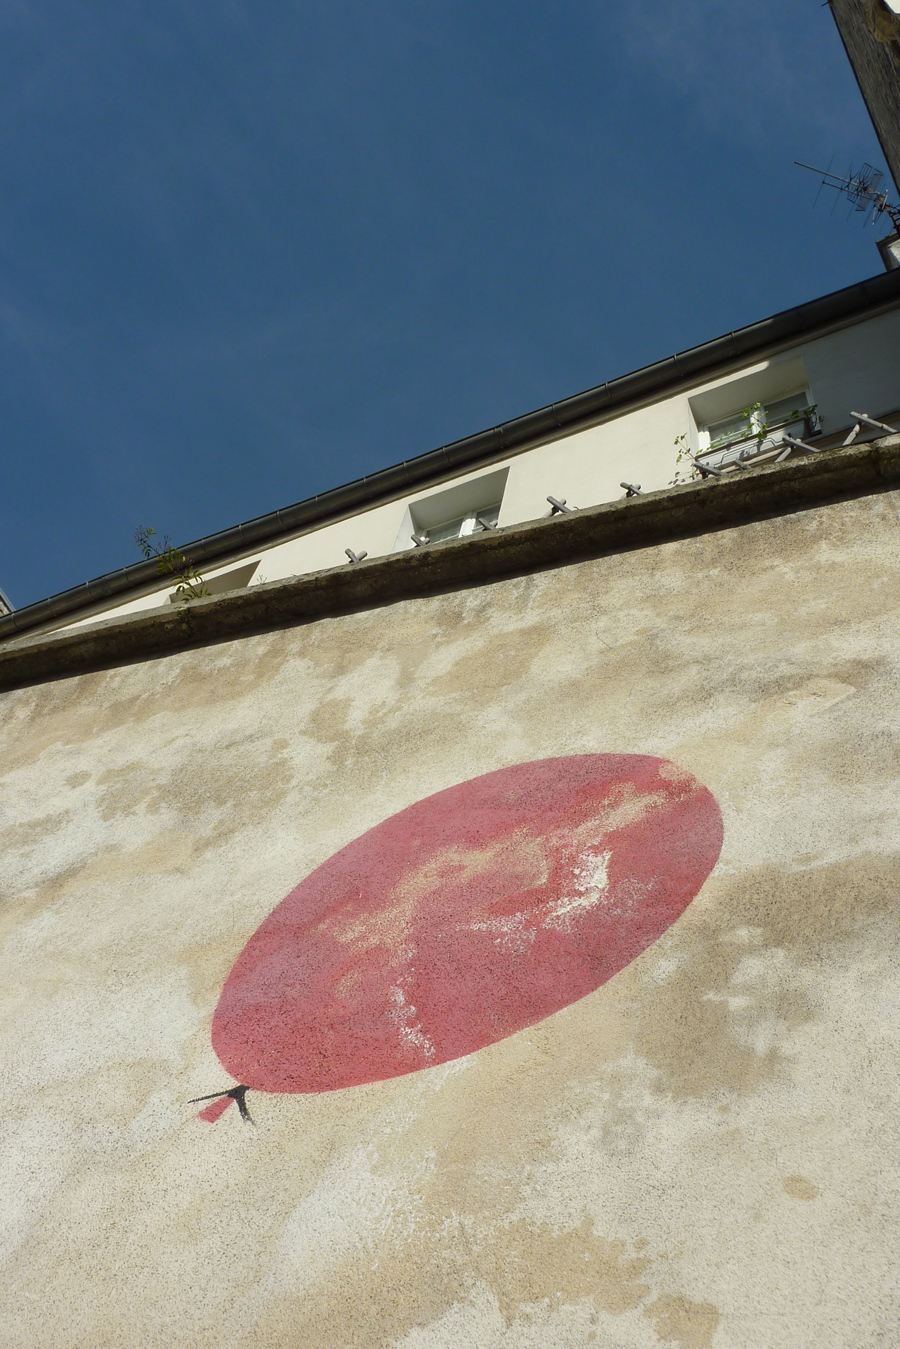 photo de ballon dessiné sur un mur dans le style street art